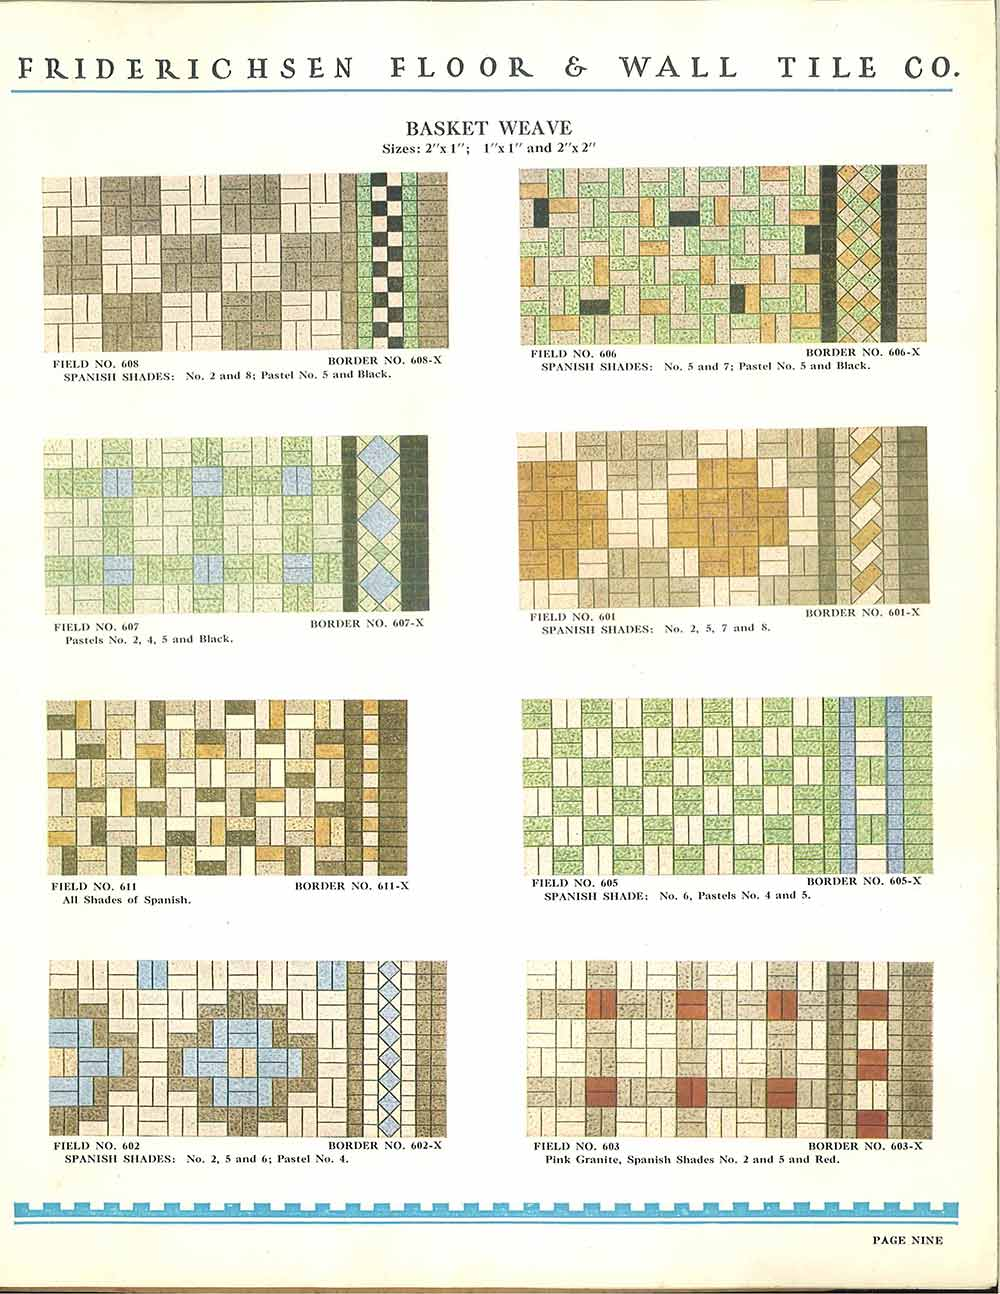 112 patterns of mosaic floor tile in amazing colors vintage 1930 ceramic floor tiles dailygadgetfo Images